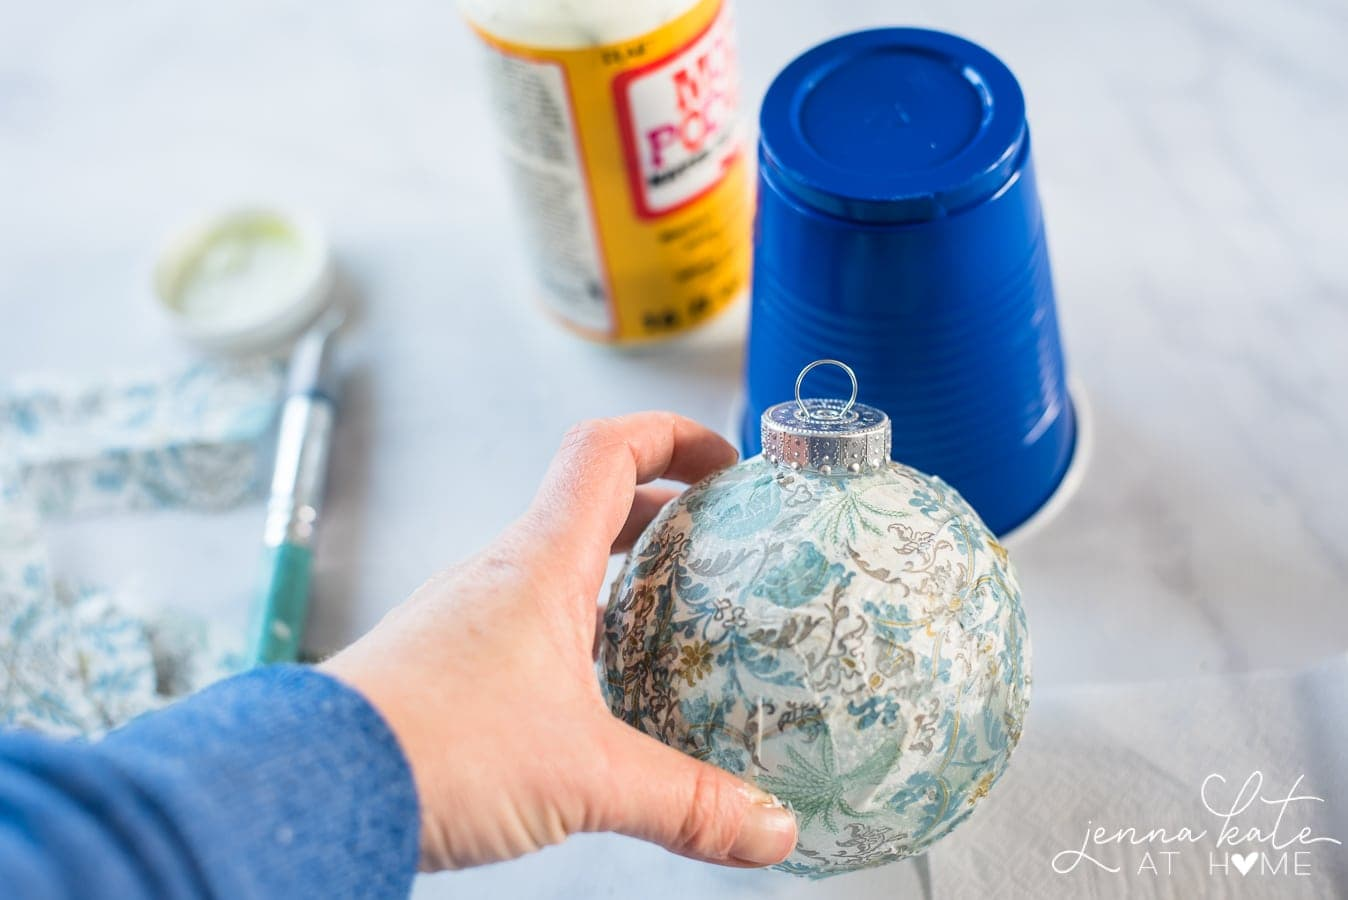 Jenna holding the ornament, now fully dry and covered with the blue napkin; blue cup, Mod Podge and paint brush in the background